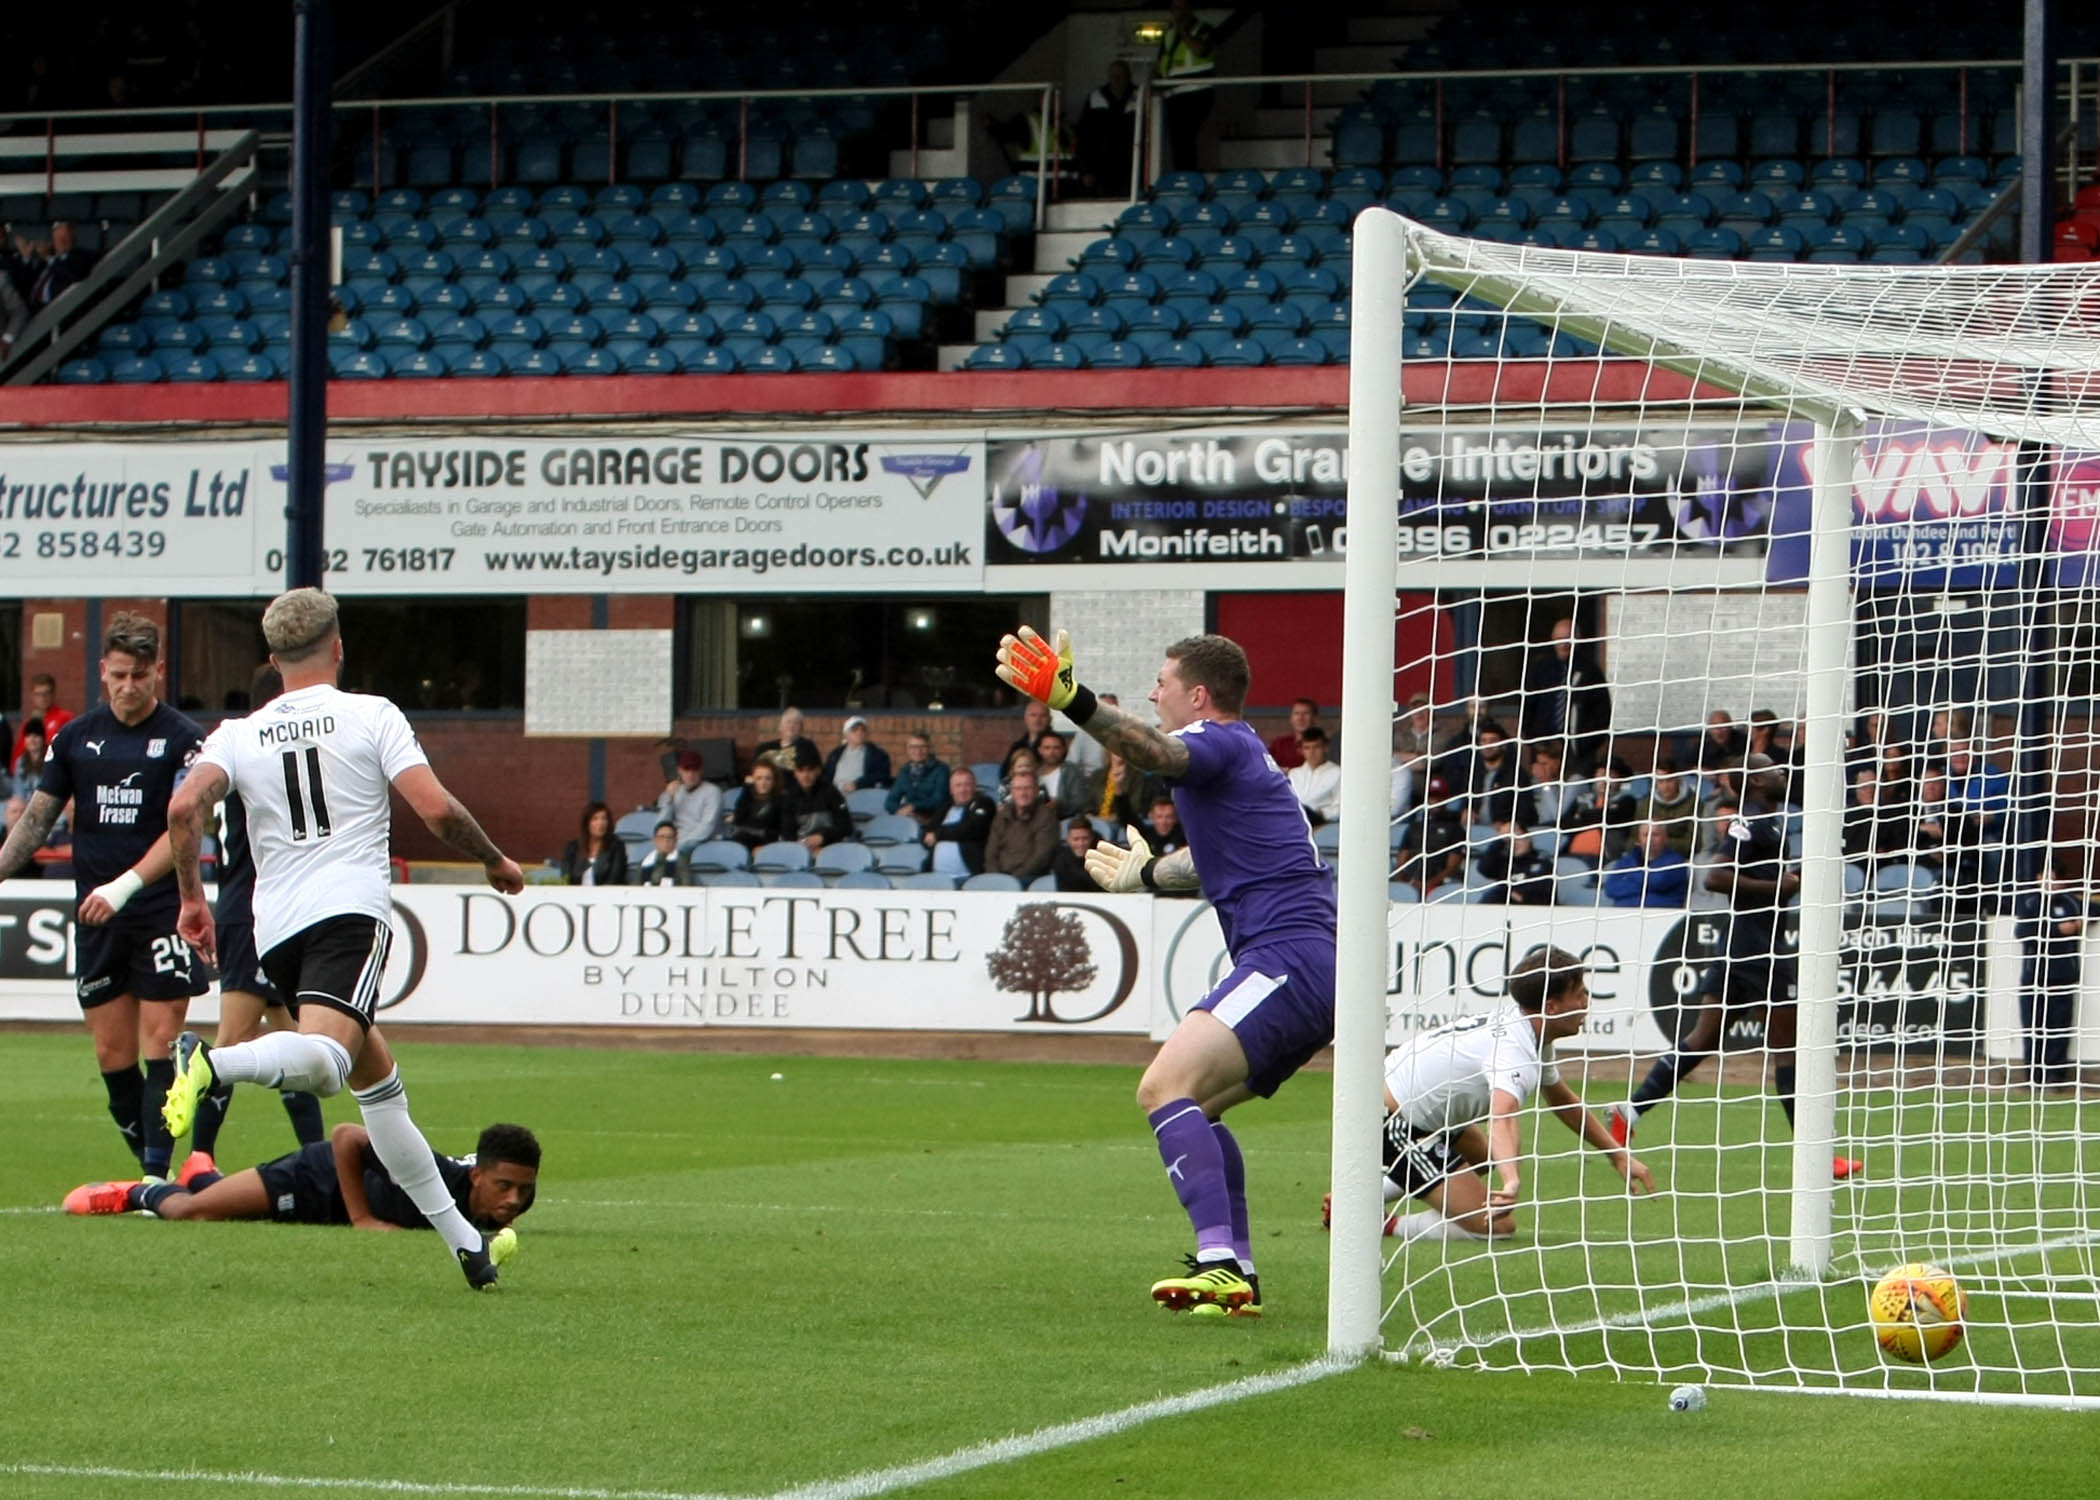 GOAL MACHINE: Lawrence Shankland nets Ayr's second goal. Picture: David Sargent.